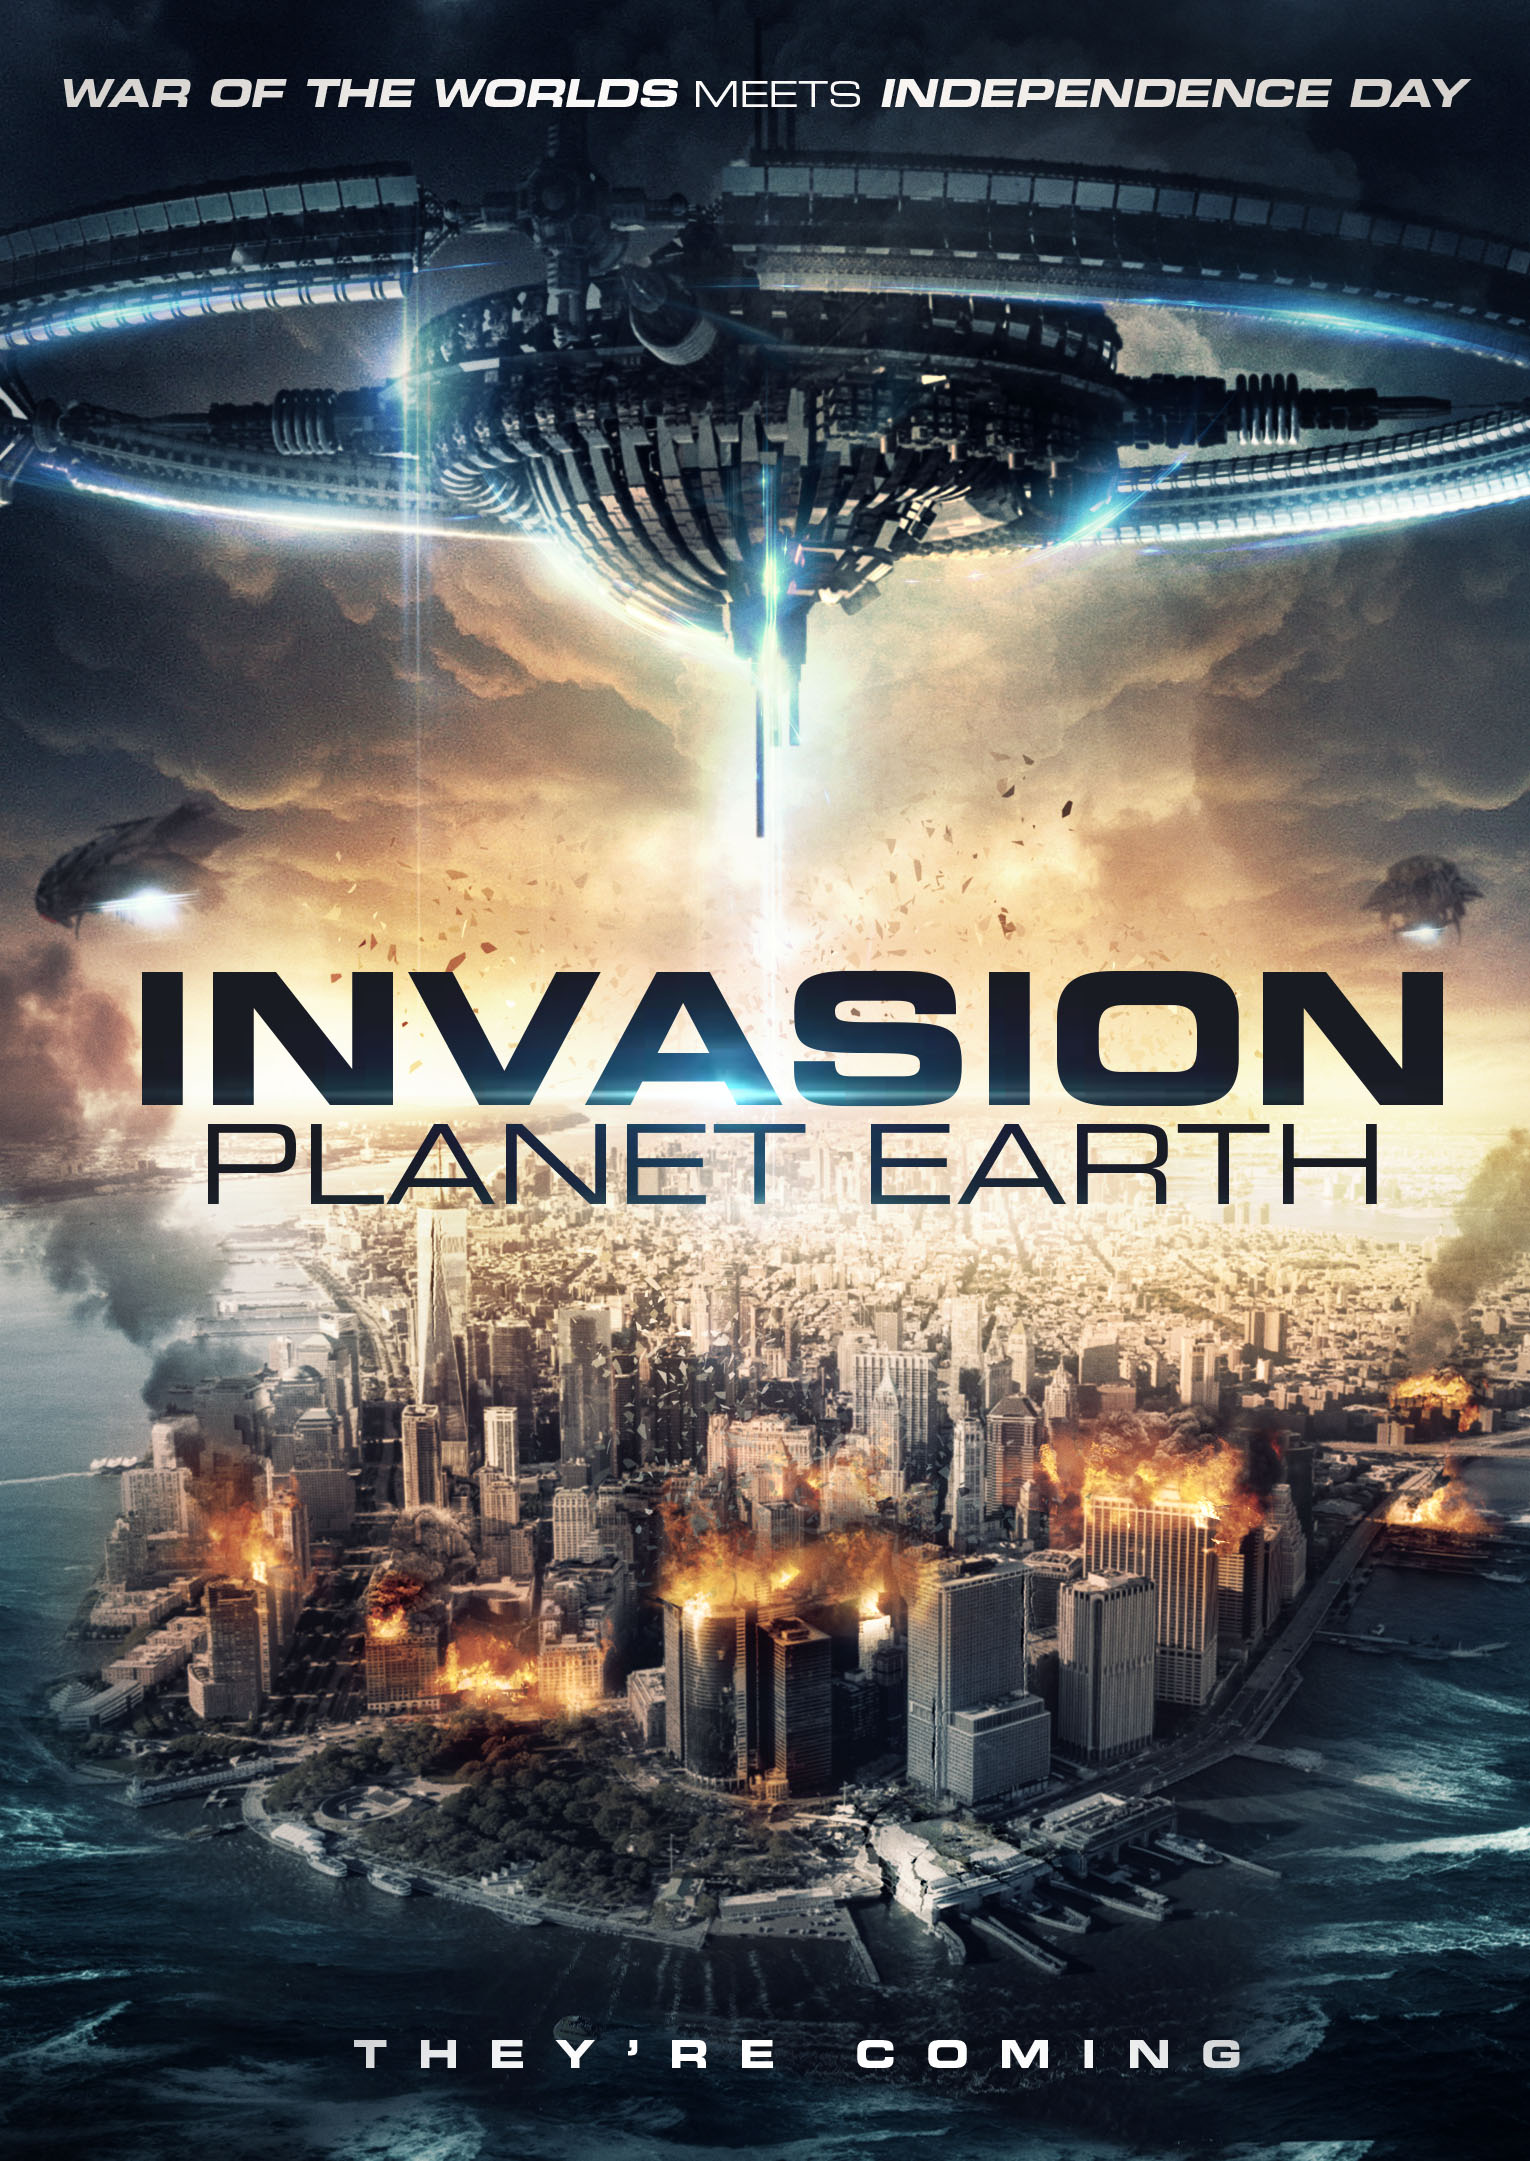 Poster for invasion Planet Earth film